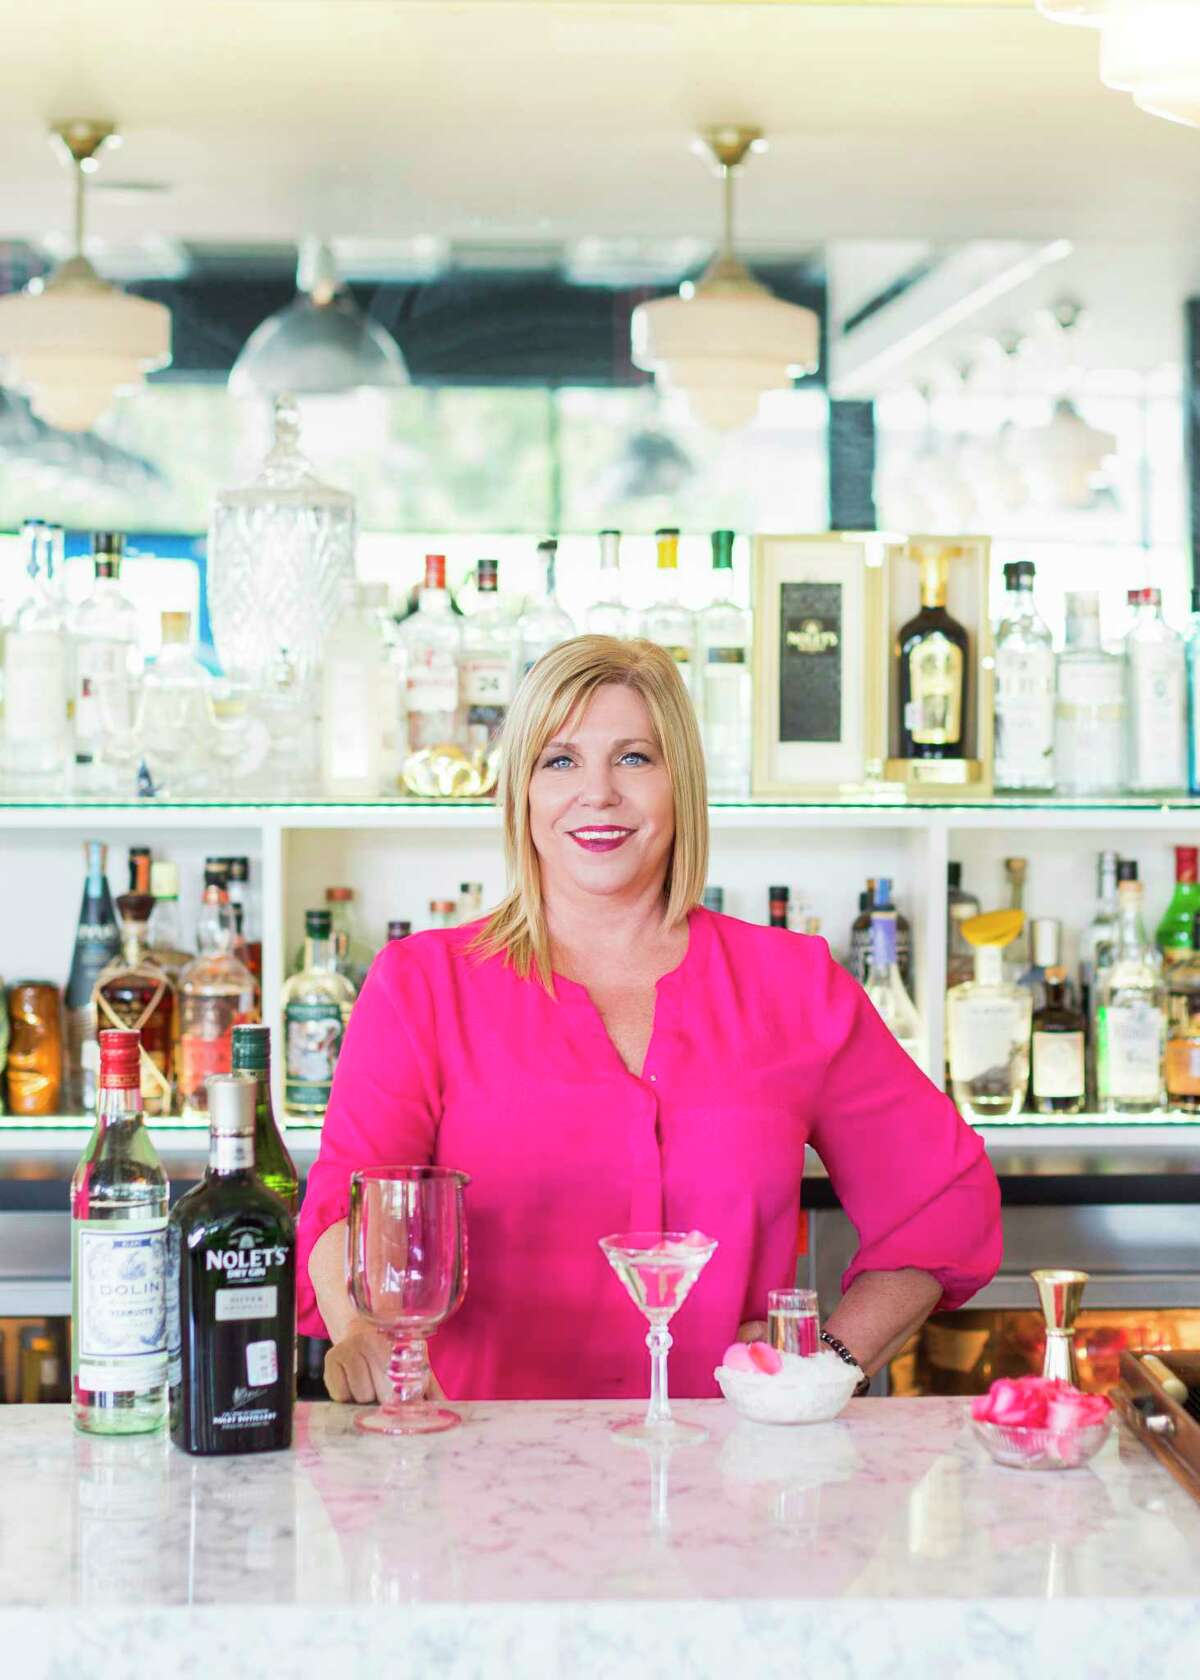 Laurie Harvey, beverage director for Sar Fish, created Nolet's English Garden, a martini made with Nolet's Silver Dry Gin and two types of vermouth.